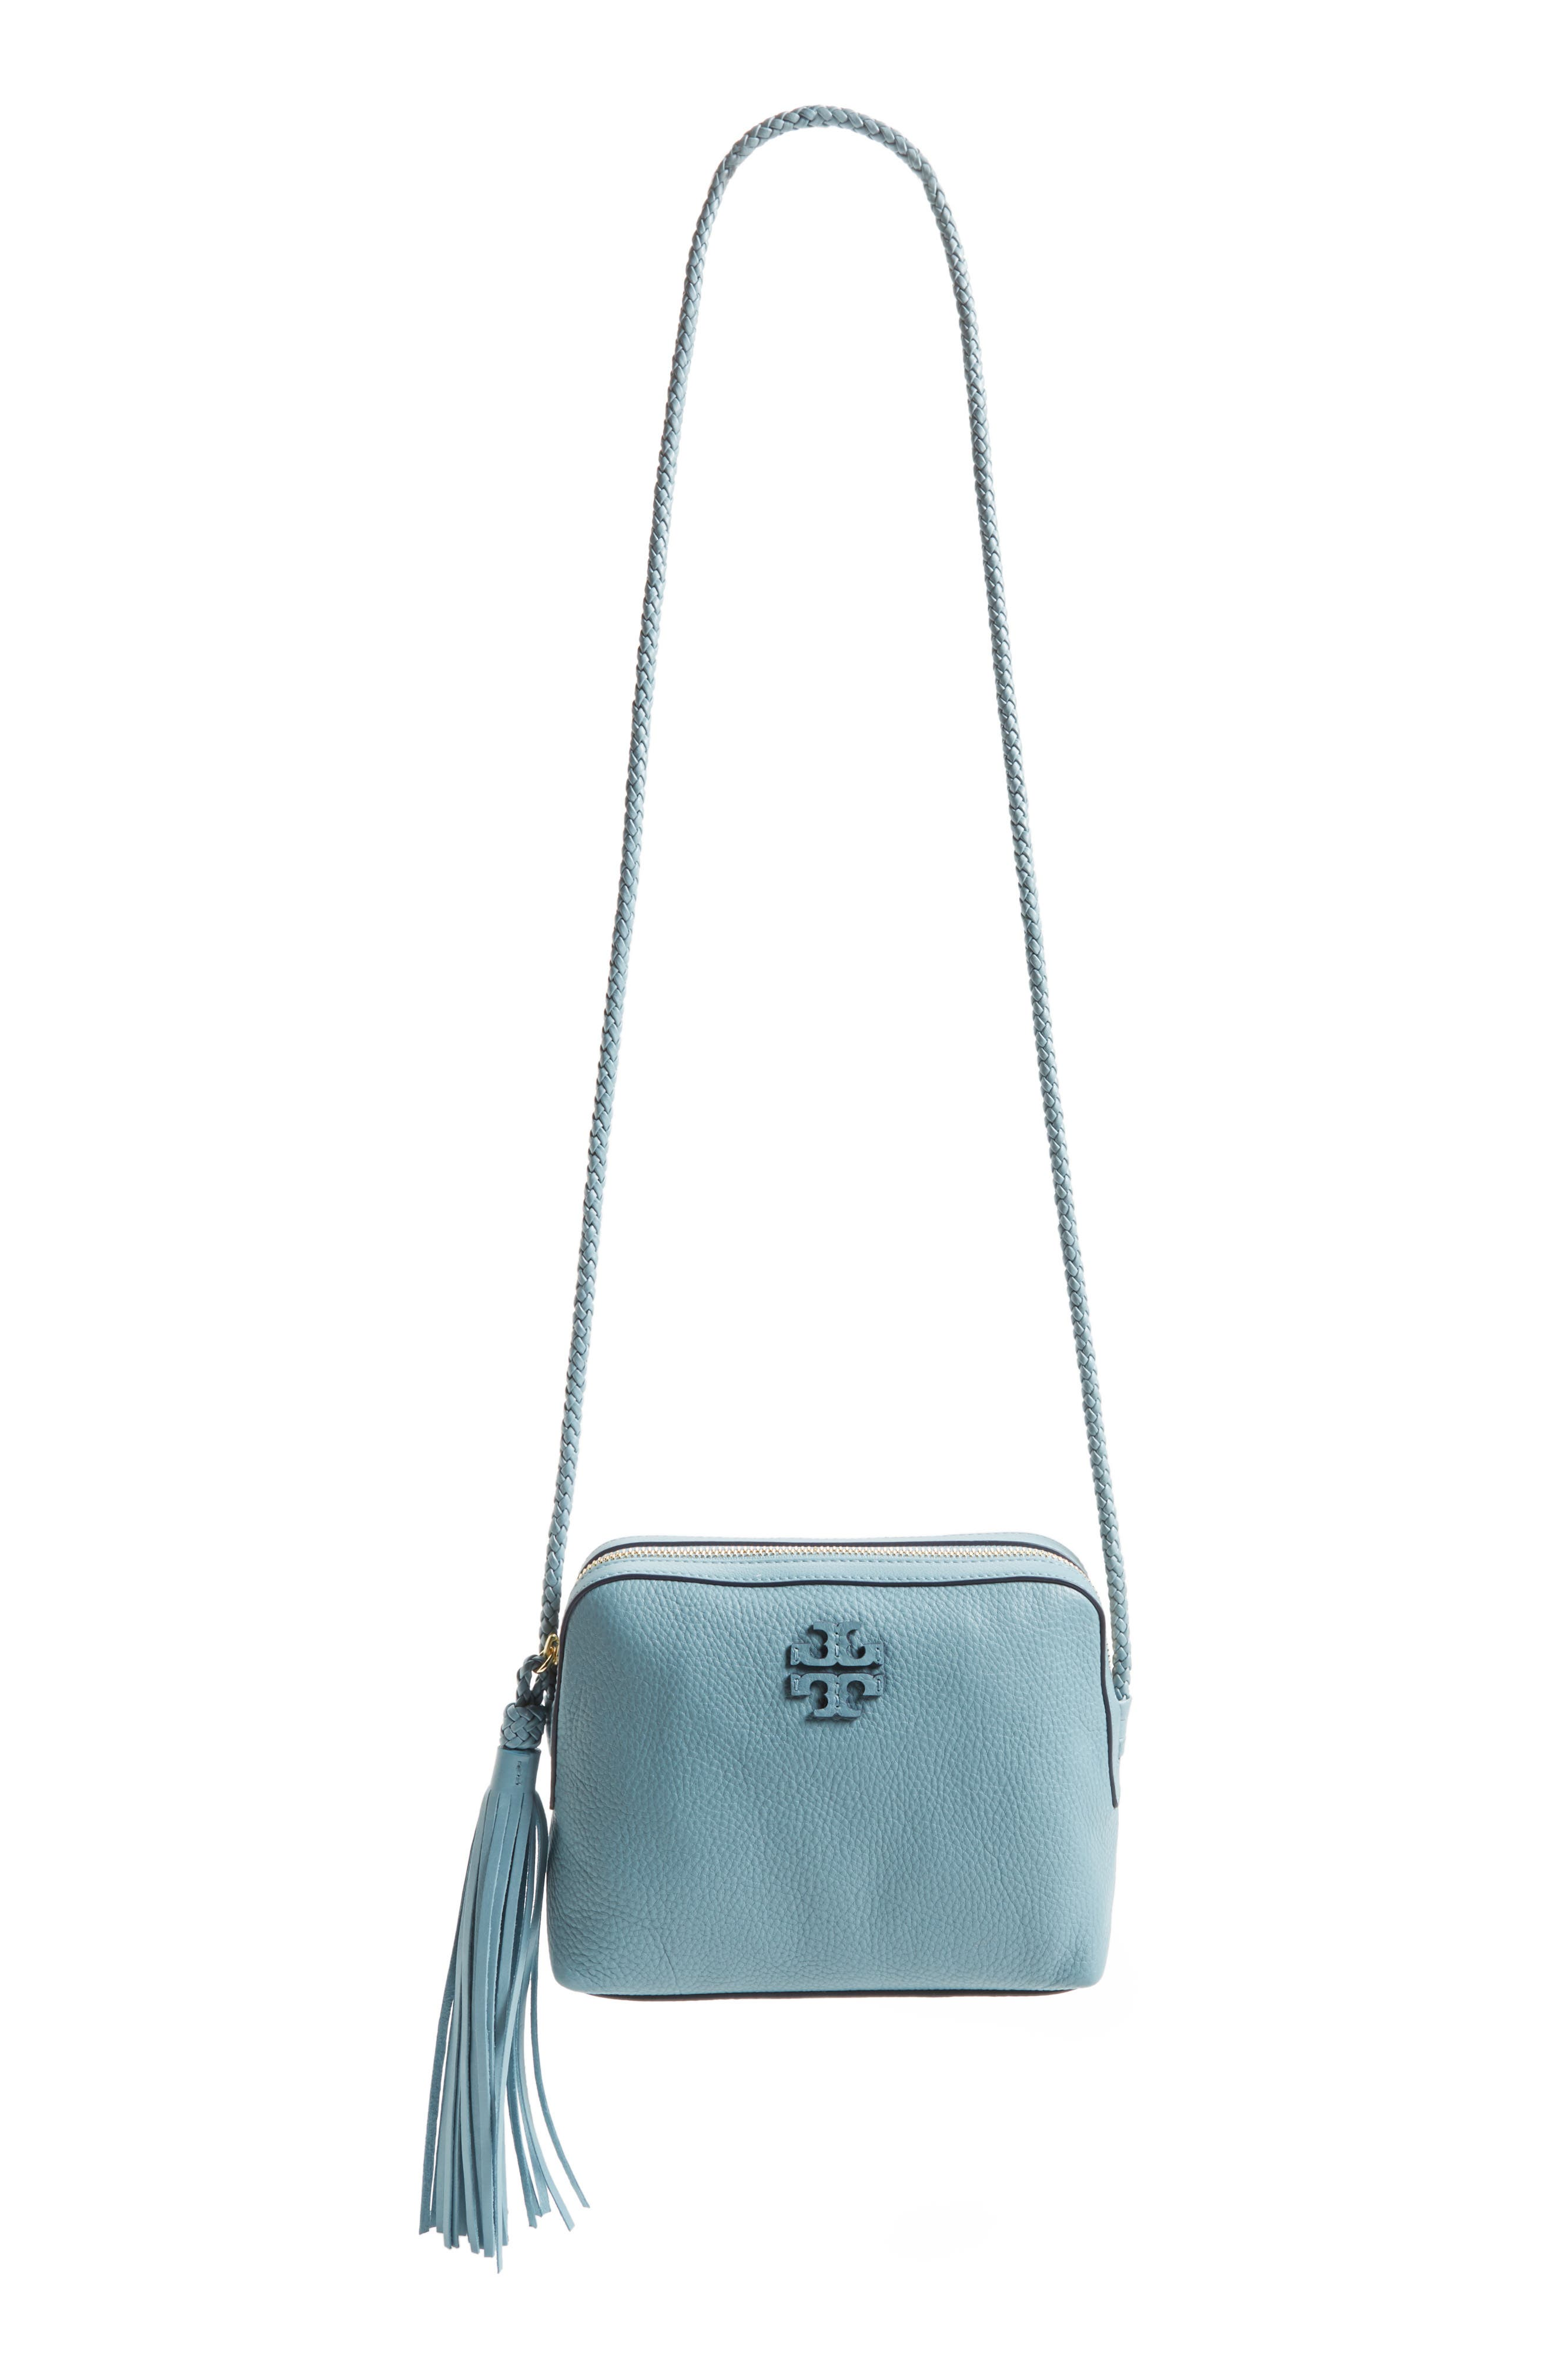 Alternate Image 1 Selected - Tory Burch Taylor Leather Camera Bag